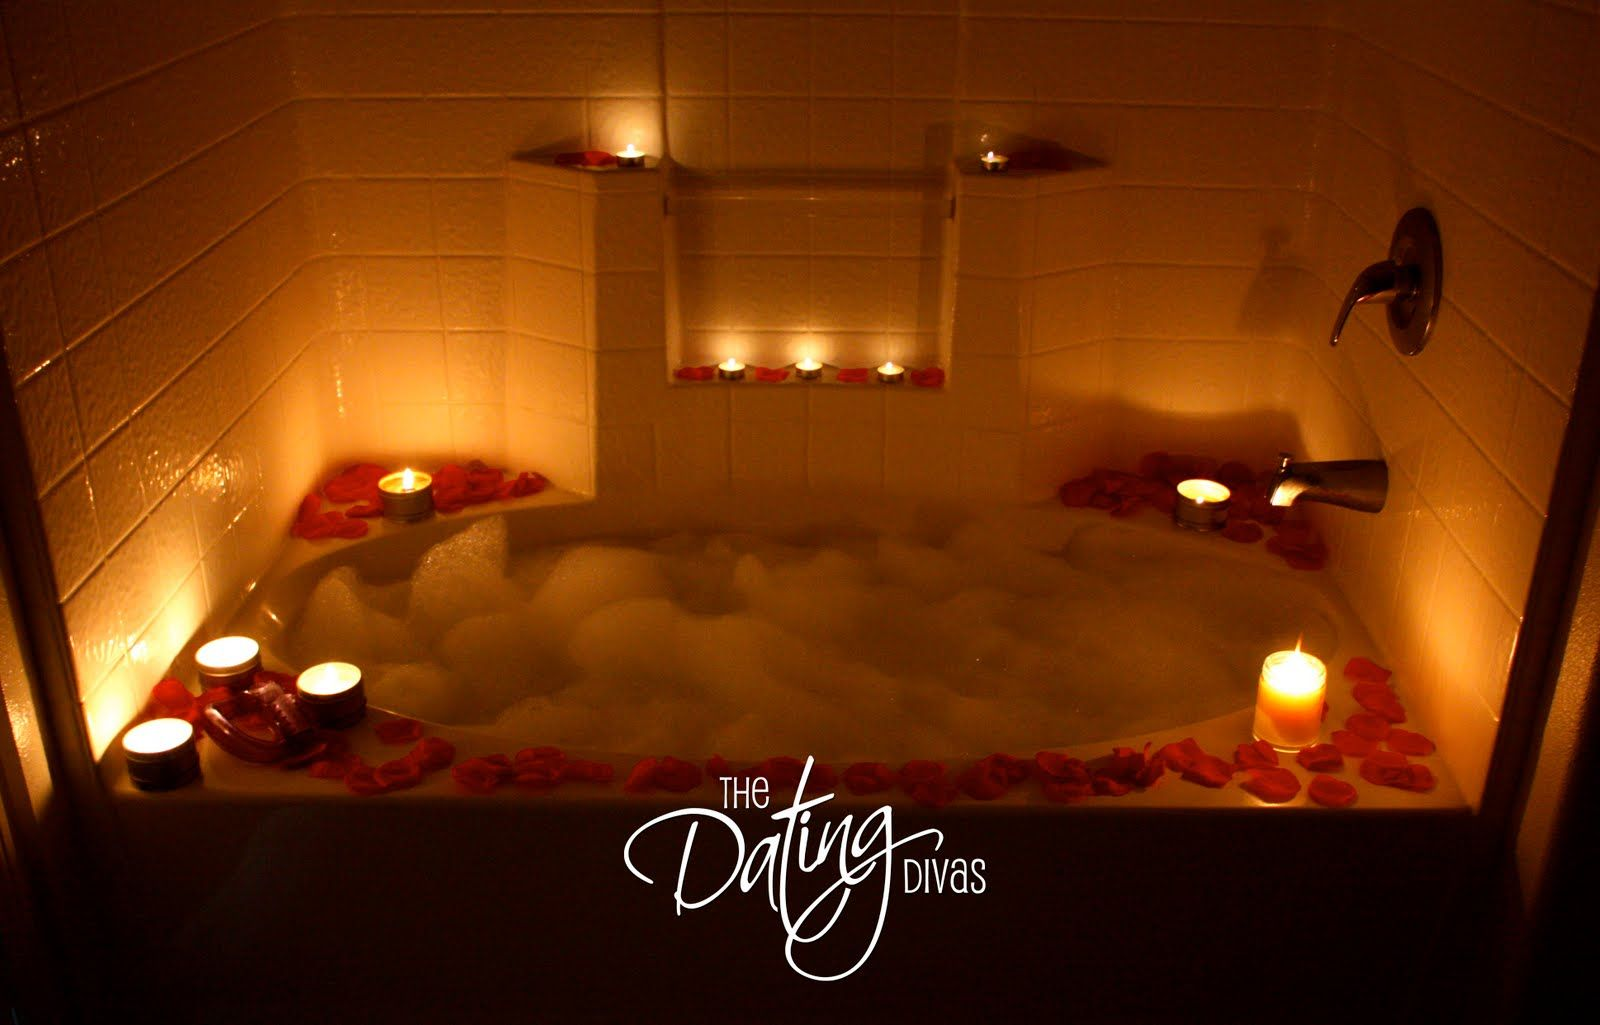 Set the mood with rose petals for romance with your spouse bubble baths bath and romantic Romantic bathroom design ideas